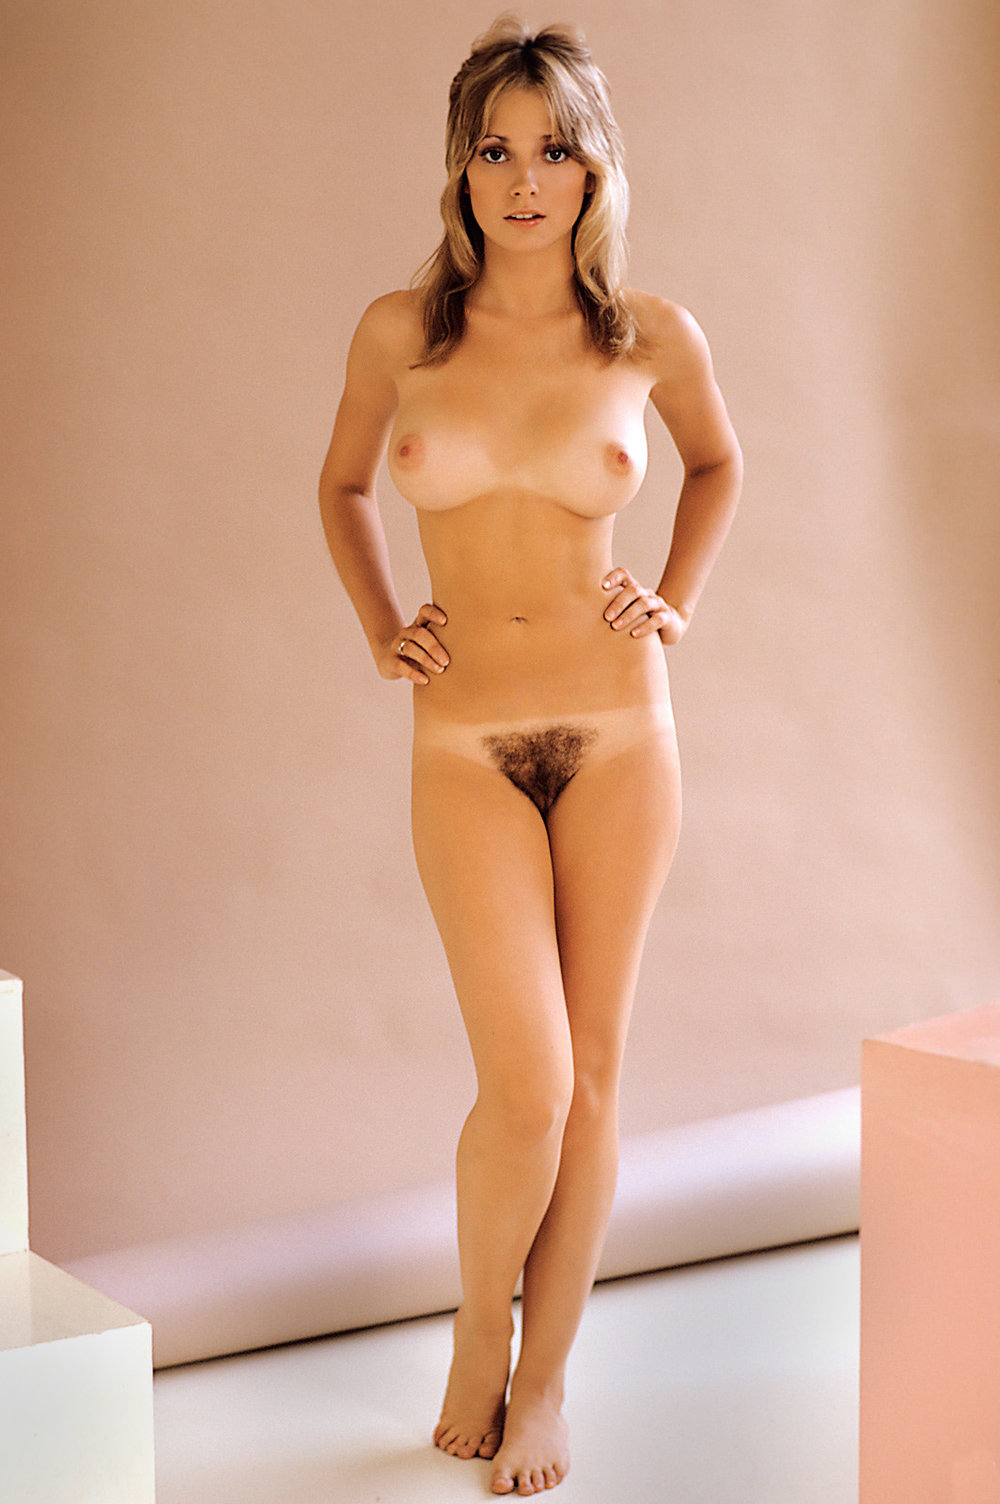 Cyndi Wood Playboy Playmate Of The Year 1974 03.jpg